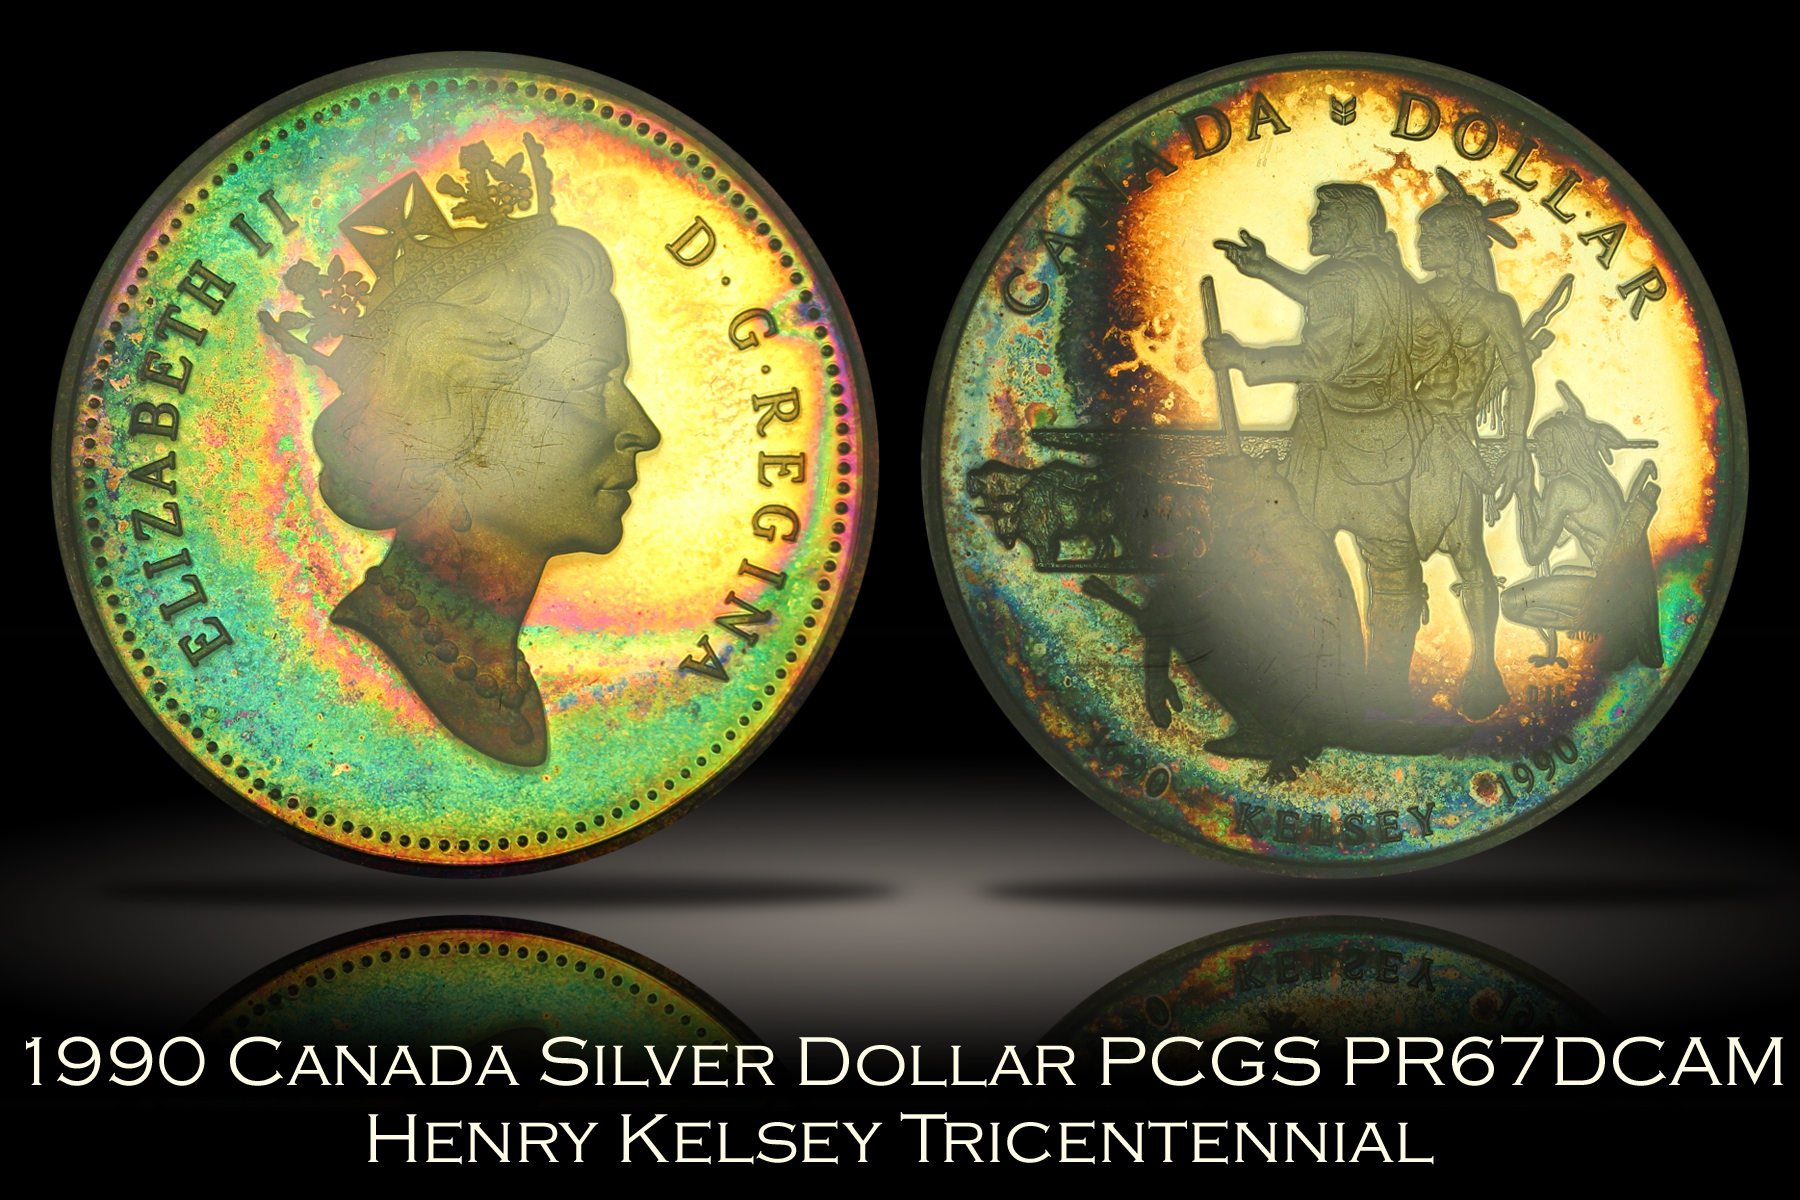 1990 Canada Henry Kelsey Silver Dollar PCGS PR67DCAM